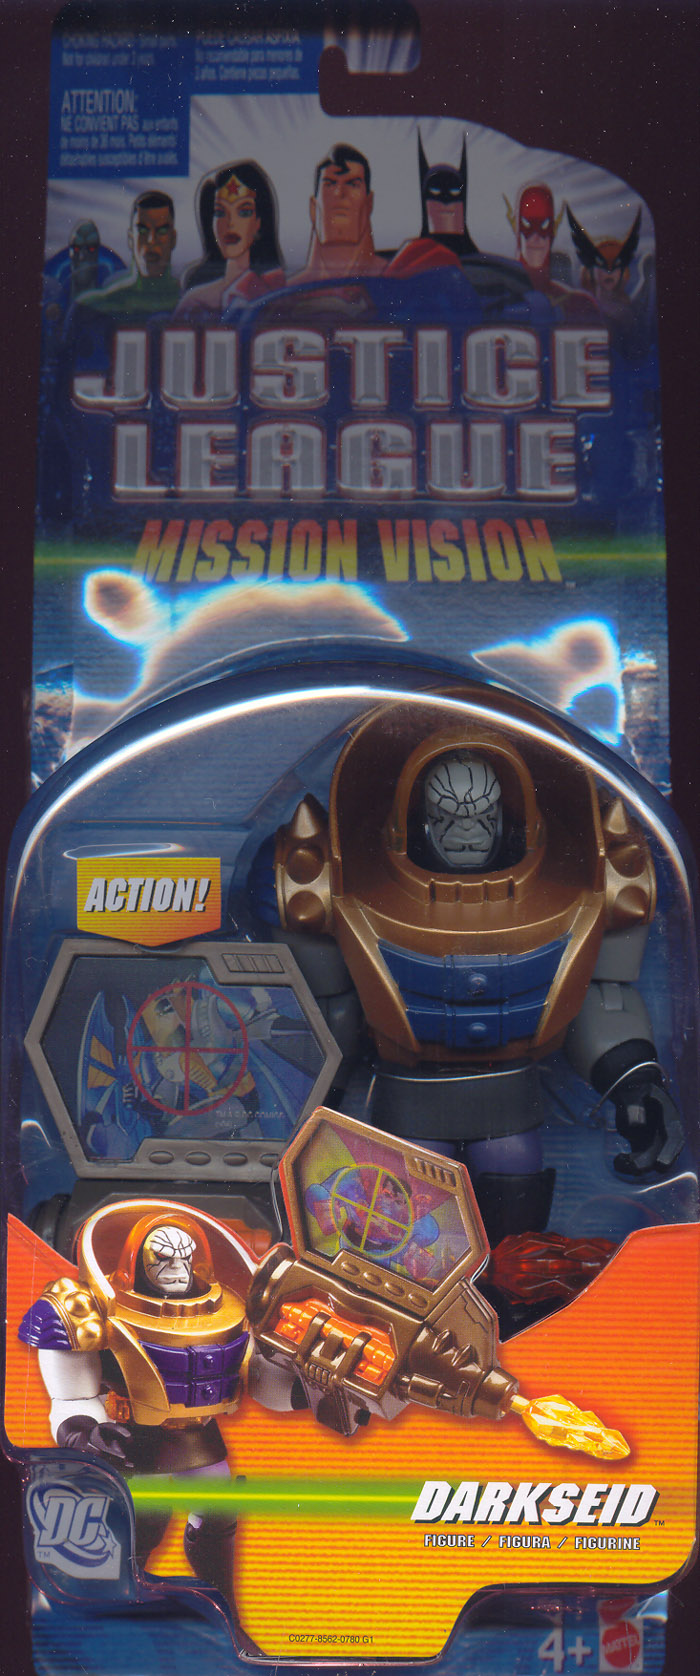 Darkseid (Mission Vision)